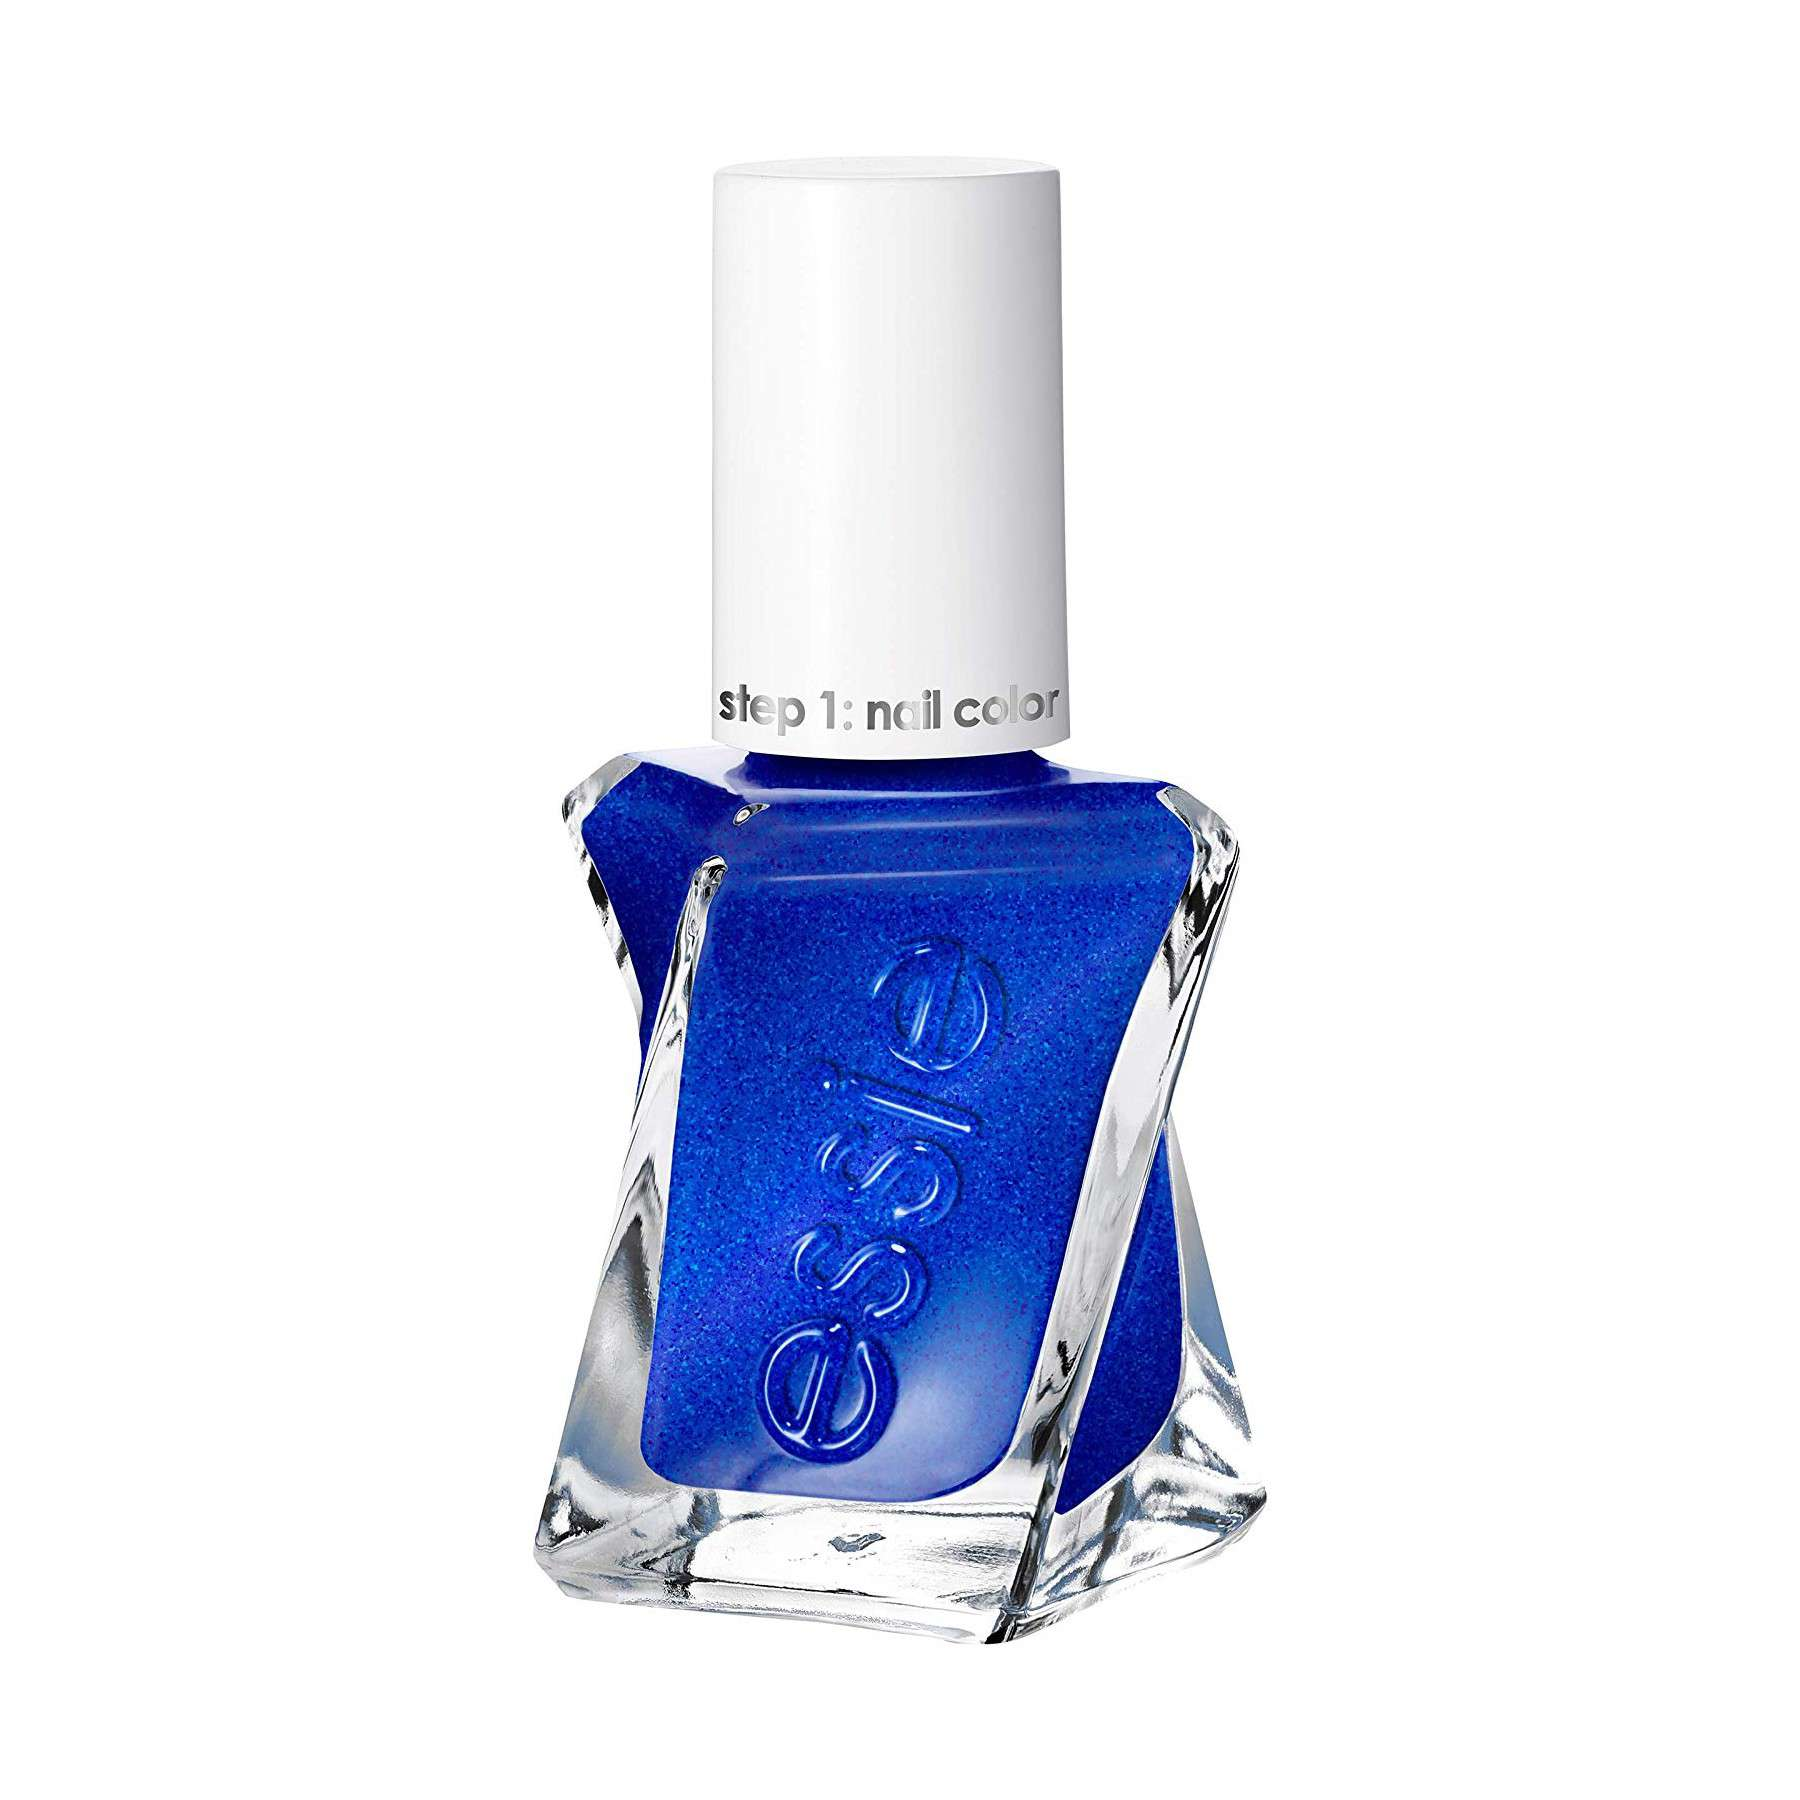 Twisted bottle of bright blue nail polish with a white lid.